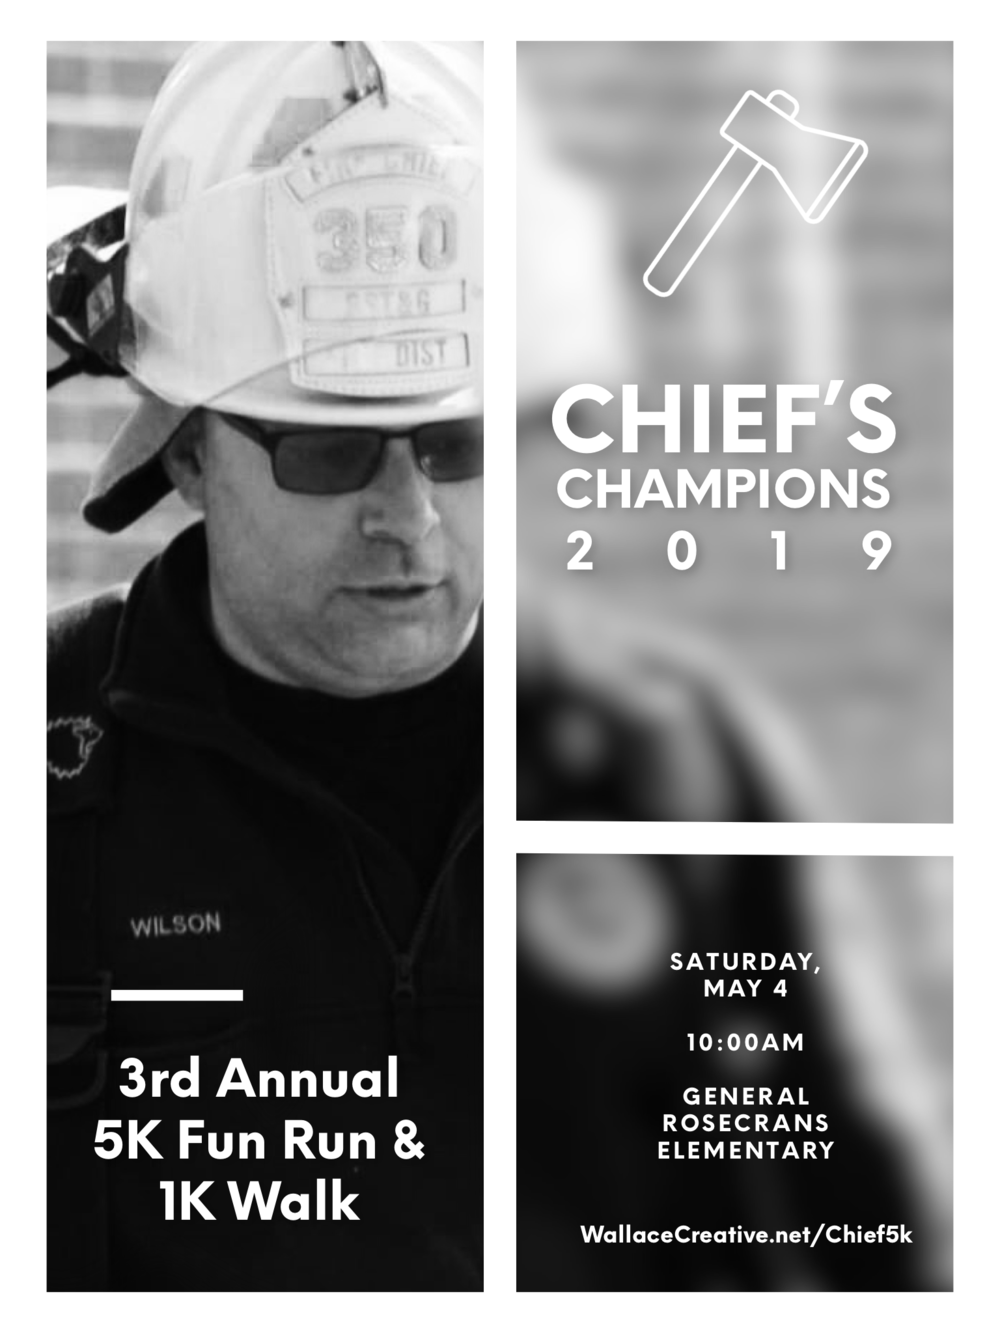 3rd Annual Chief's Champions 5K Fun Run & 1K Walk - This event started as a fundraiser for Jeff Wilson, BST&G Fire Chief as he battled Glioblastoma. His fight ended on June 8, 2018, but the battle against this disease continues. This year's run will raise funds to support the fight against brain cancer, and those still fighting with proceeds towards research and local families currently battling cancer. Please join us on Saturday, May 4, 2019 as we kick off Brain Cancer Awareness Month with this family fun run event.Chief's Champions will gather at The Park at General Rosecrans Elementary, 301 South Miller Drive, SunburyComplete the form below to register.Can't make the run but still want to donate? Scroll to the bottom of the page!